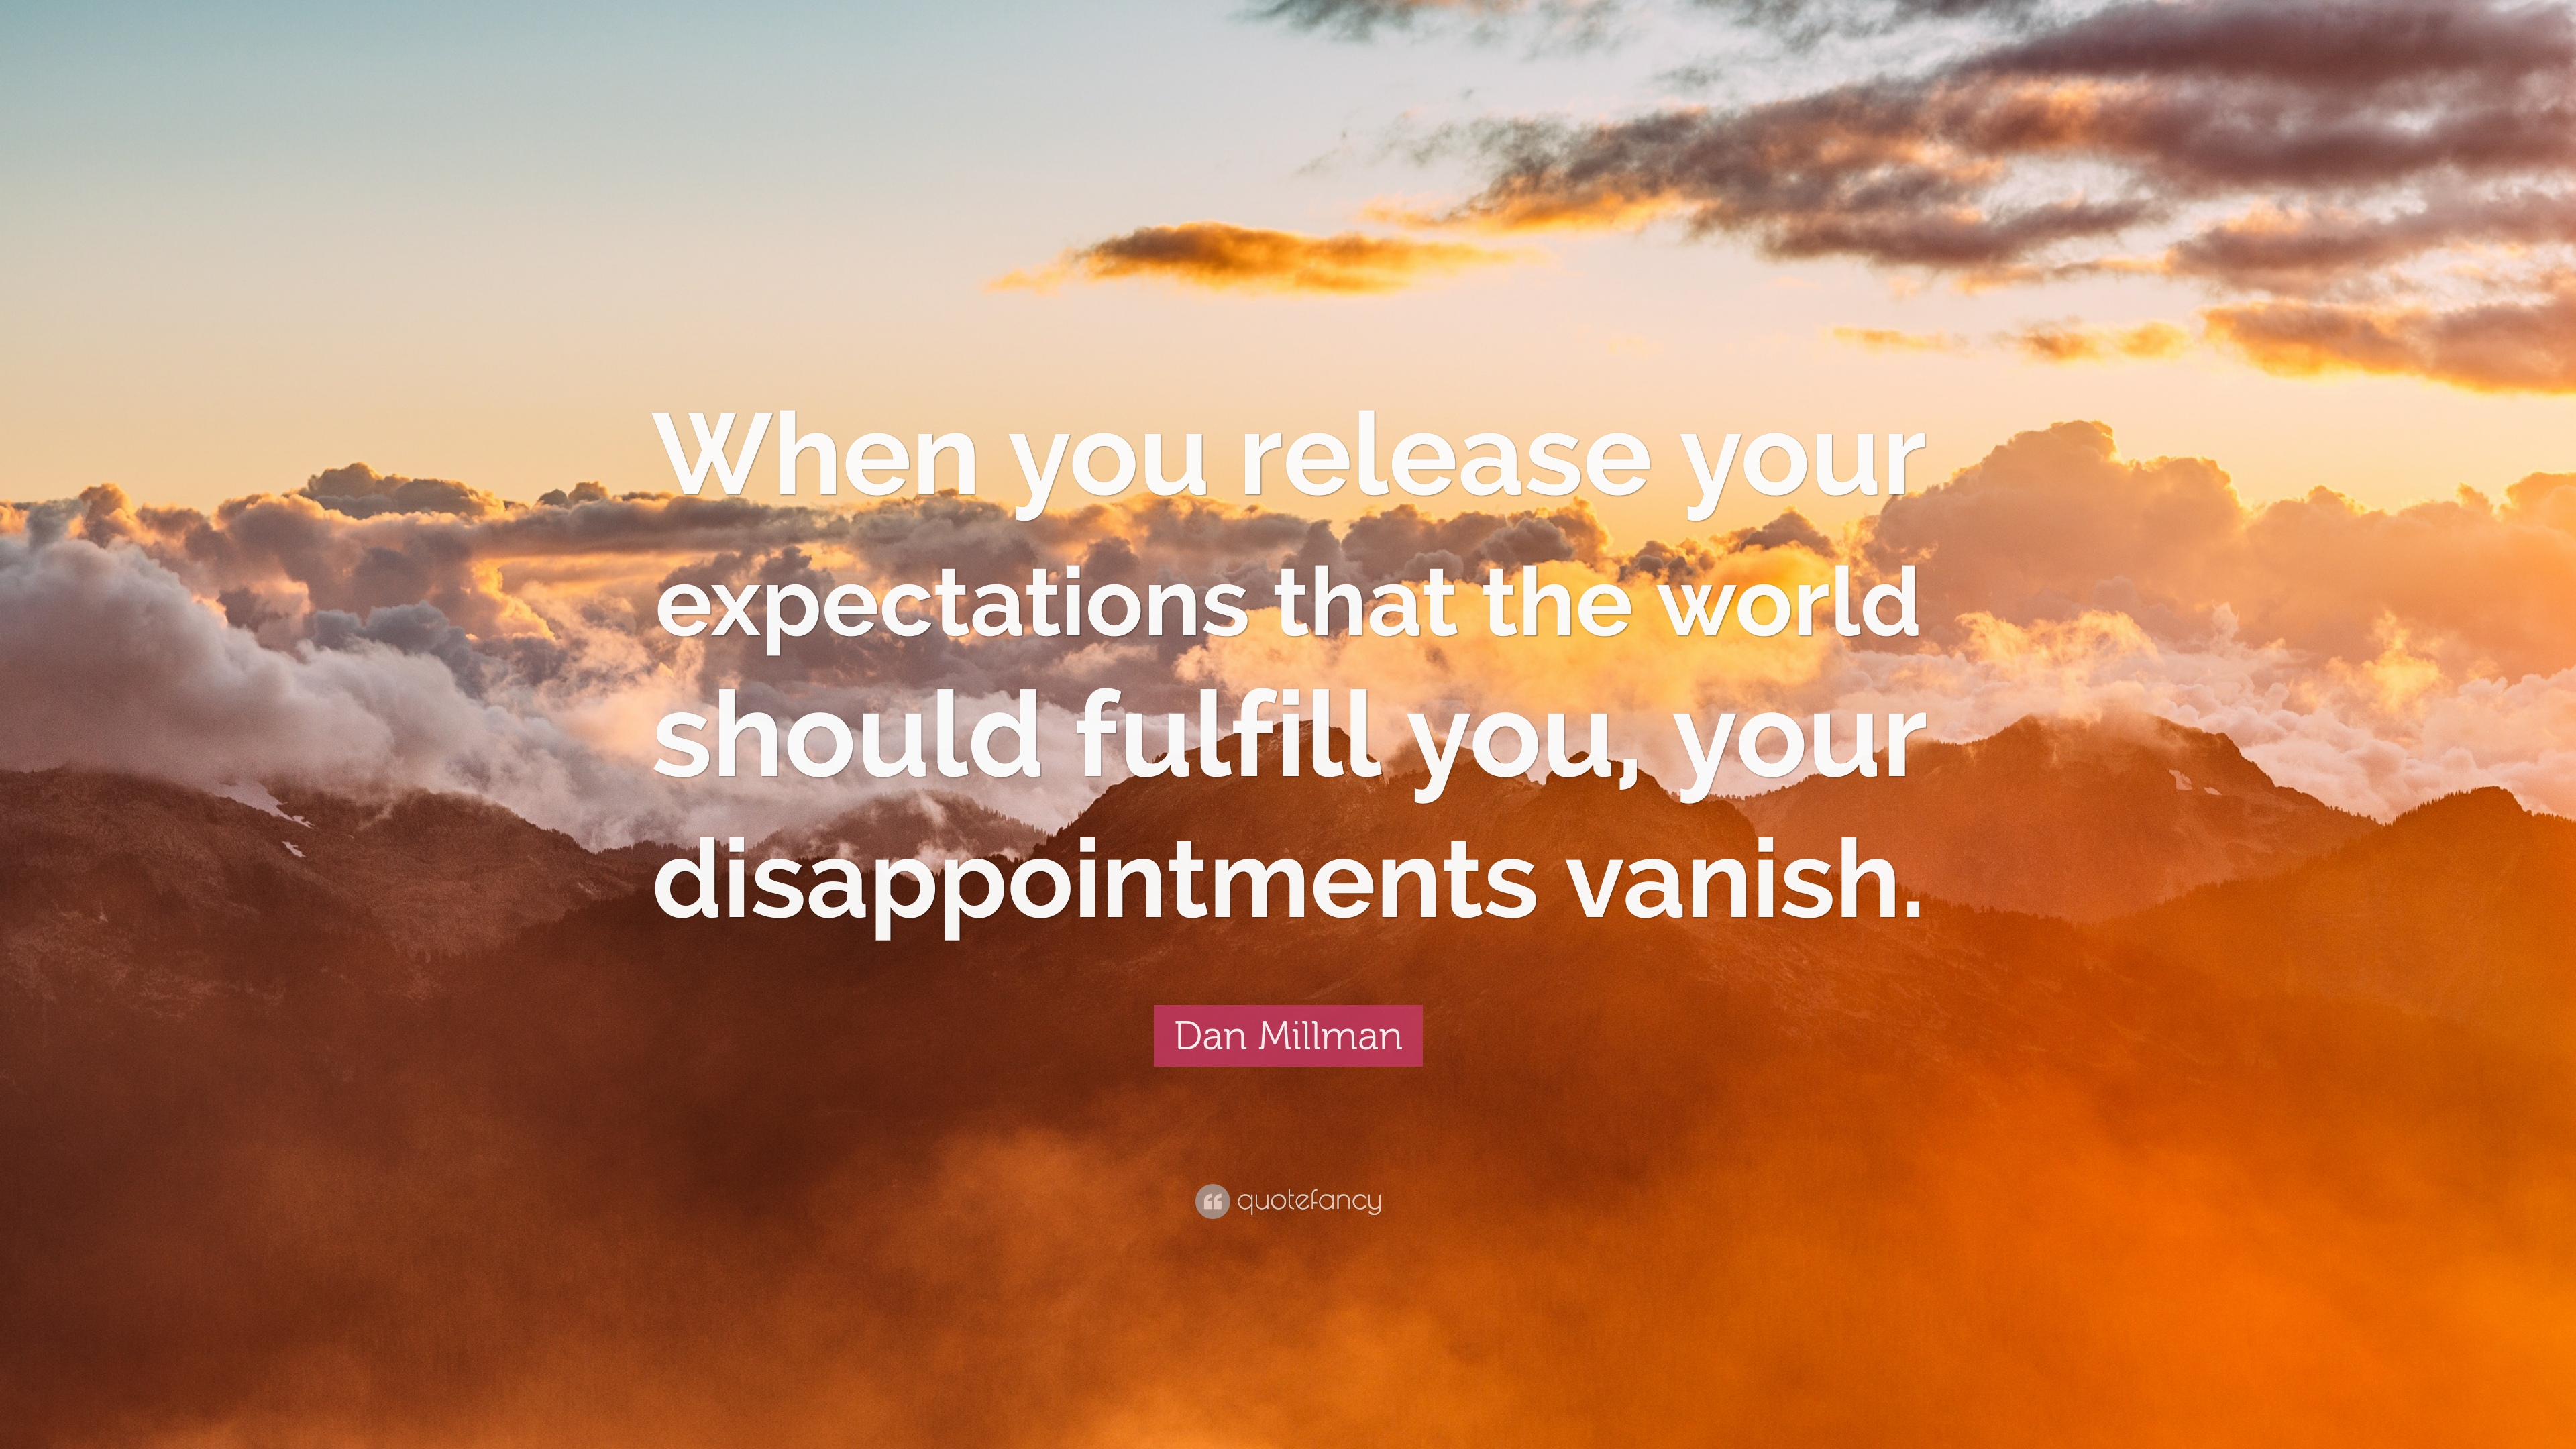 dan millman quote when you release your expectations that the dan millman quote when you release your expectations that the world should fulfill you